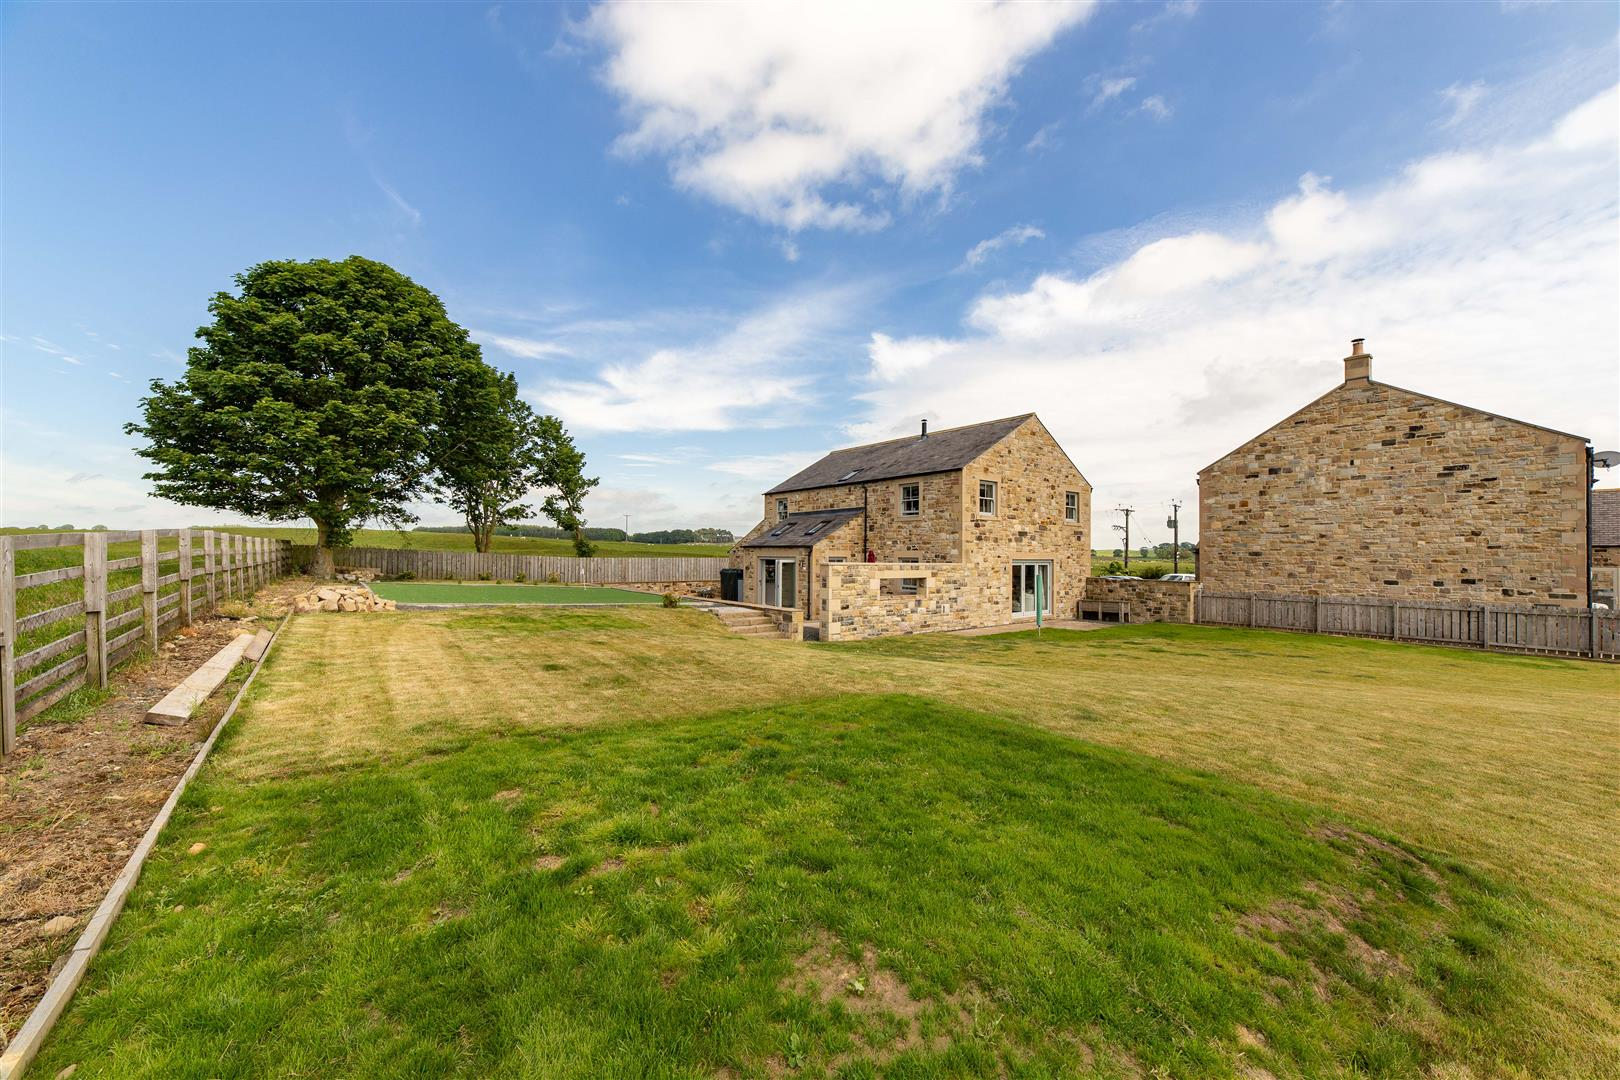 4 bed detached house for sale, Hexham - Property Image 1